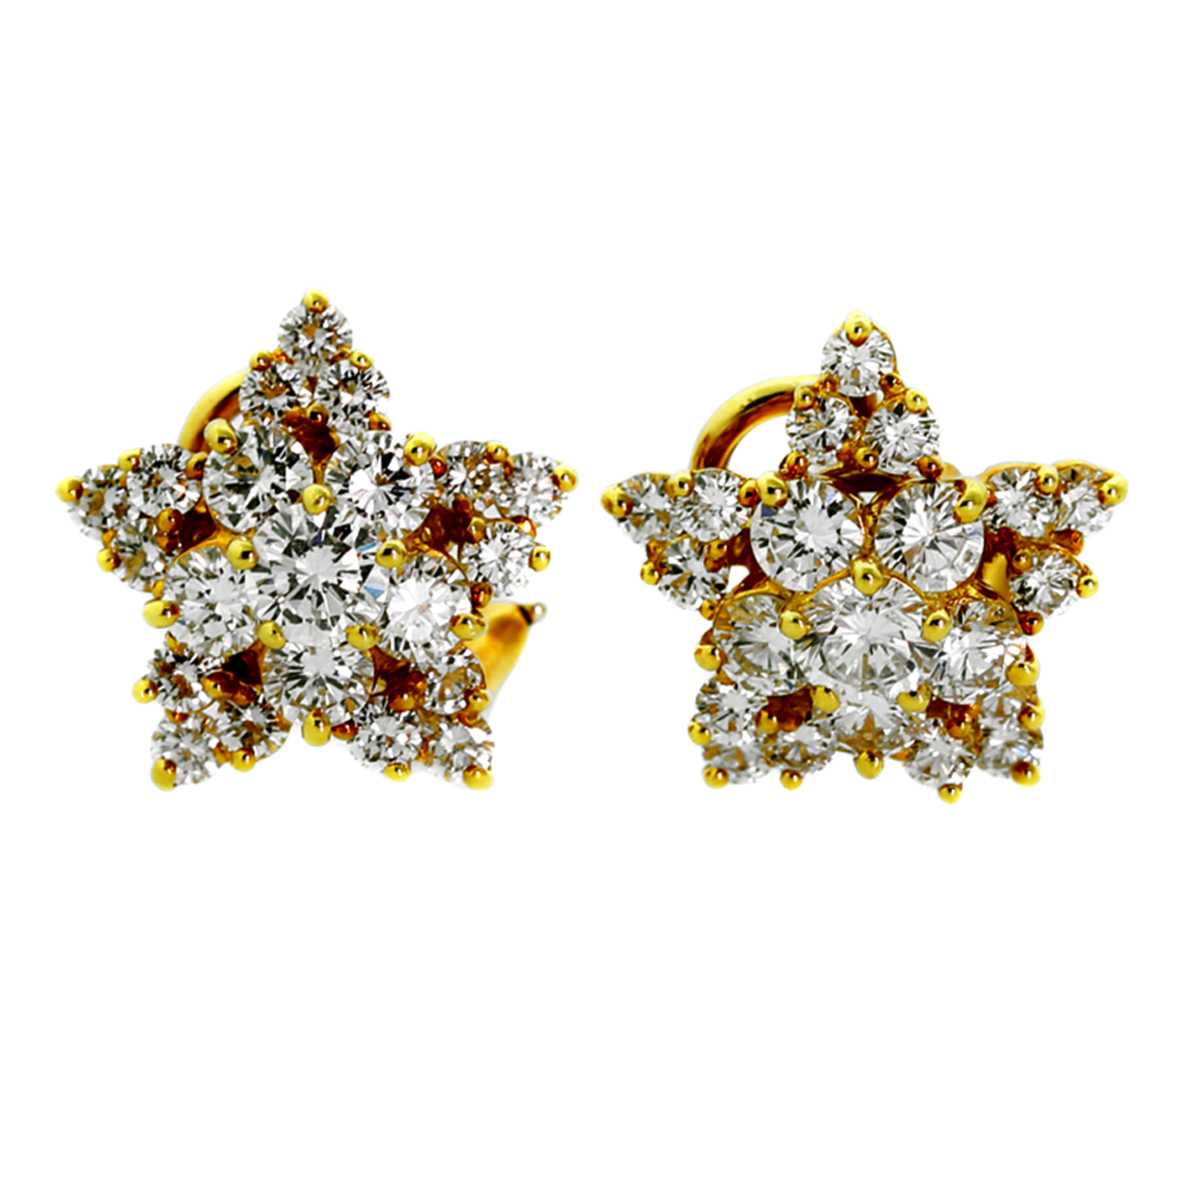 Tiffany & Co Star Diamond Gold Earrings - Tiffany and Co Jewelry